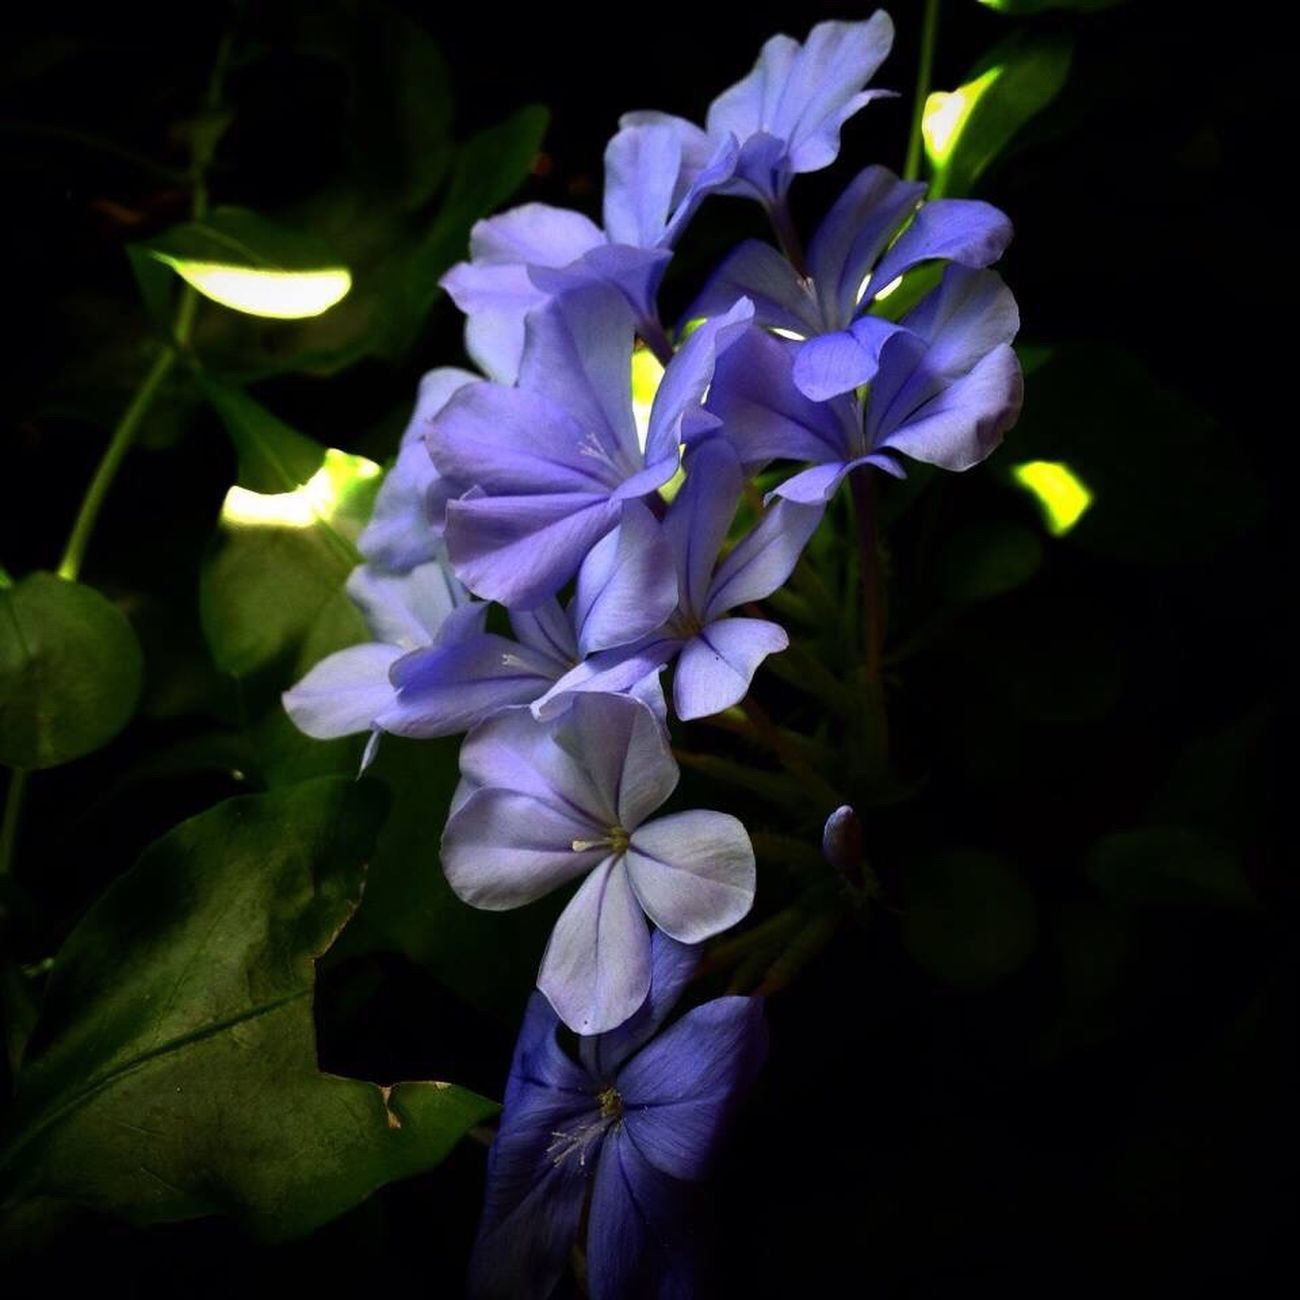 Plumbago Flower Nature Beauty In Nature Petal Plant Close-up No People Outdoors Plumbago Blue Blue Flowers Periwinkle